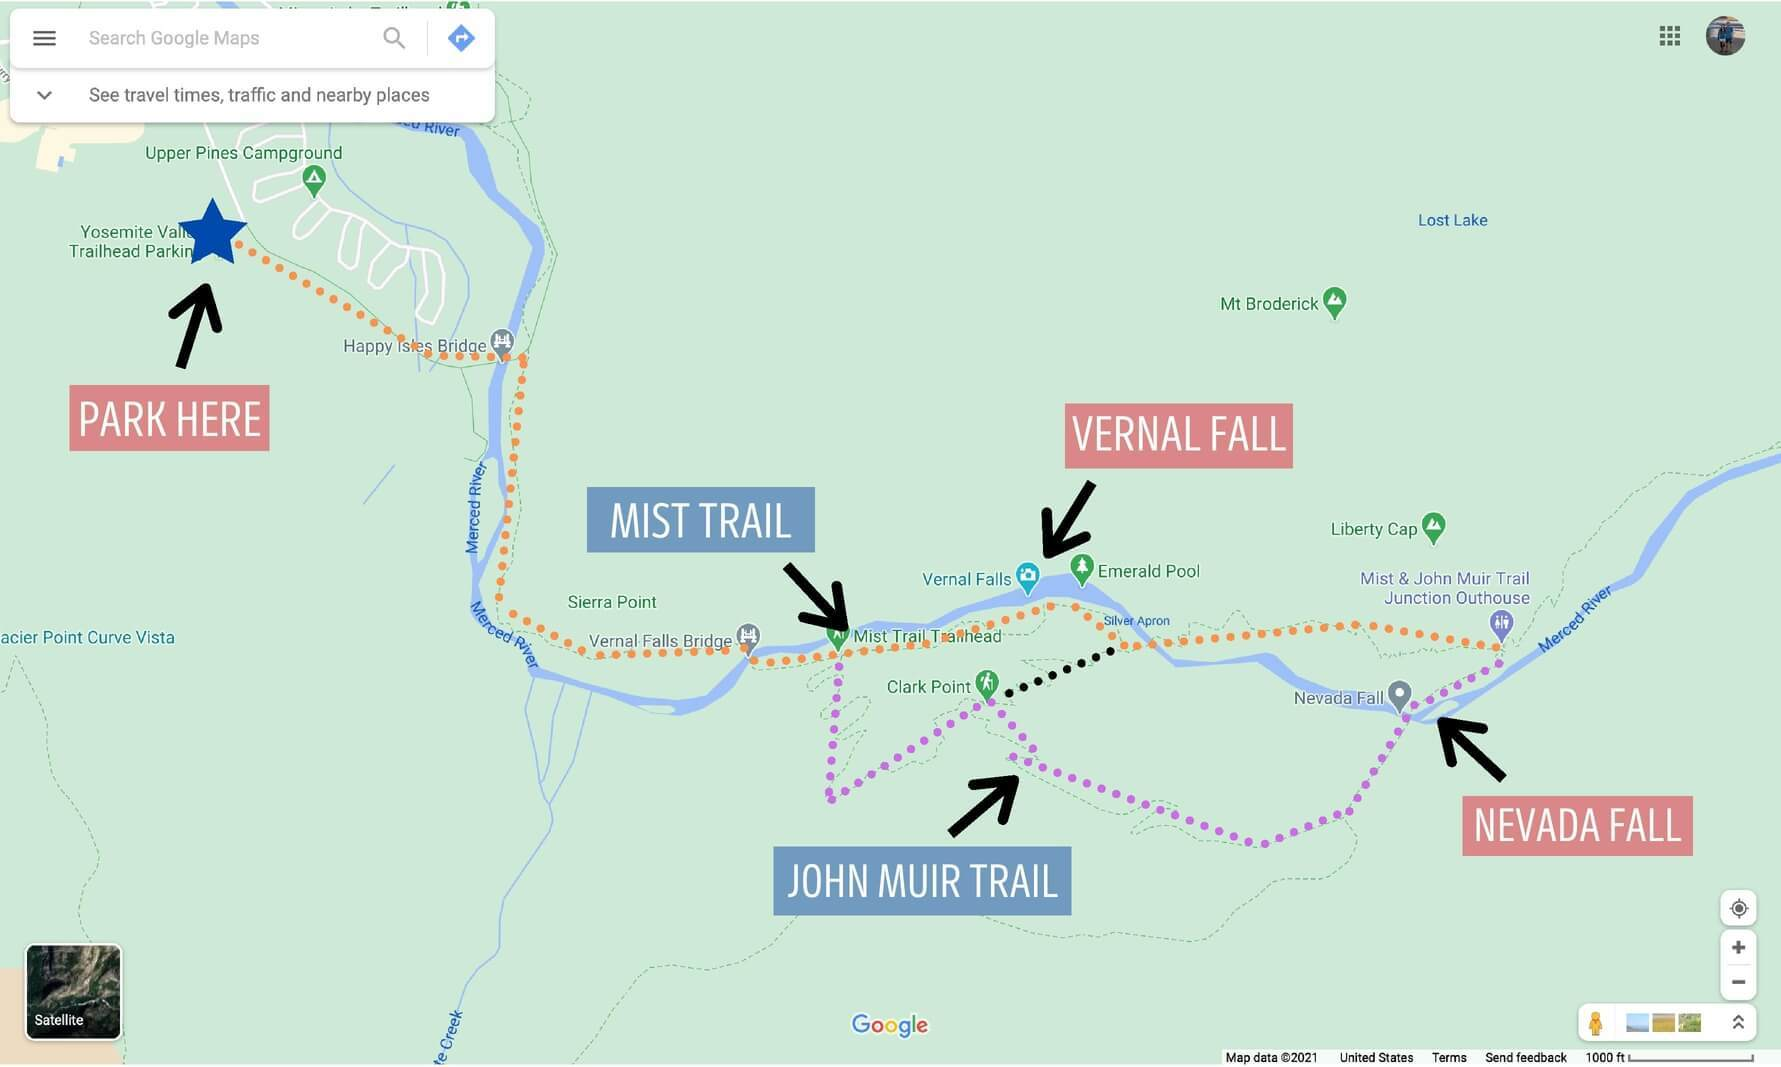 Yosemite Mist and john muir loop trail map showing directions passing vernal fall and nevada fall with parking